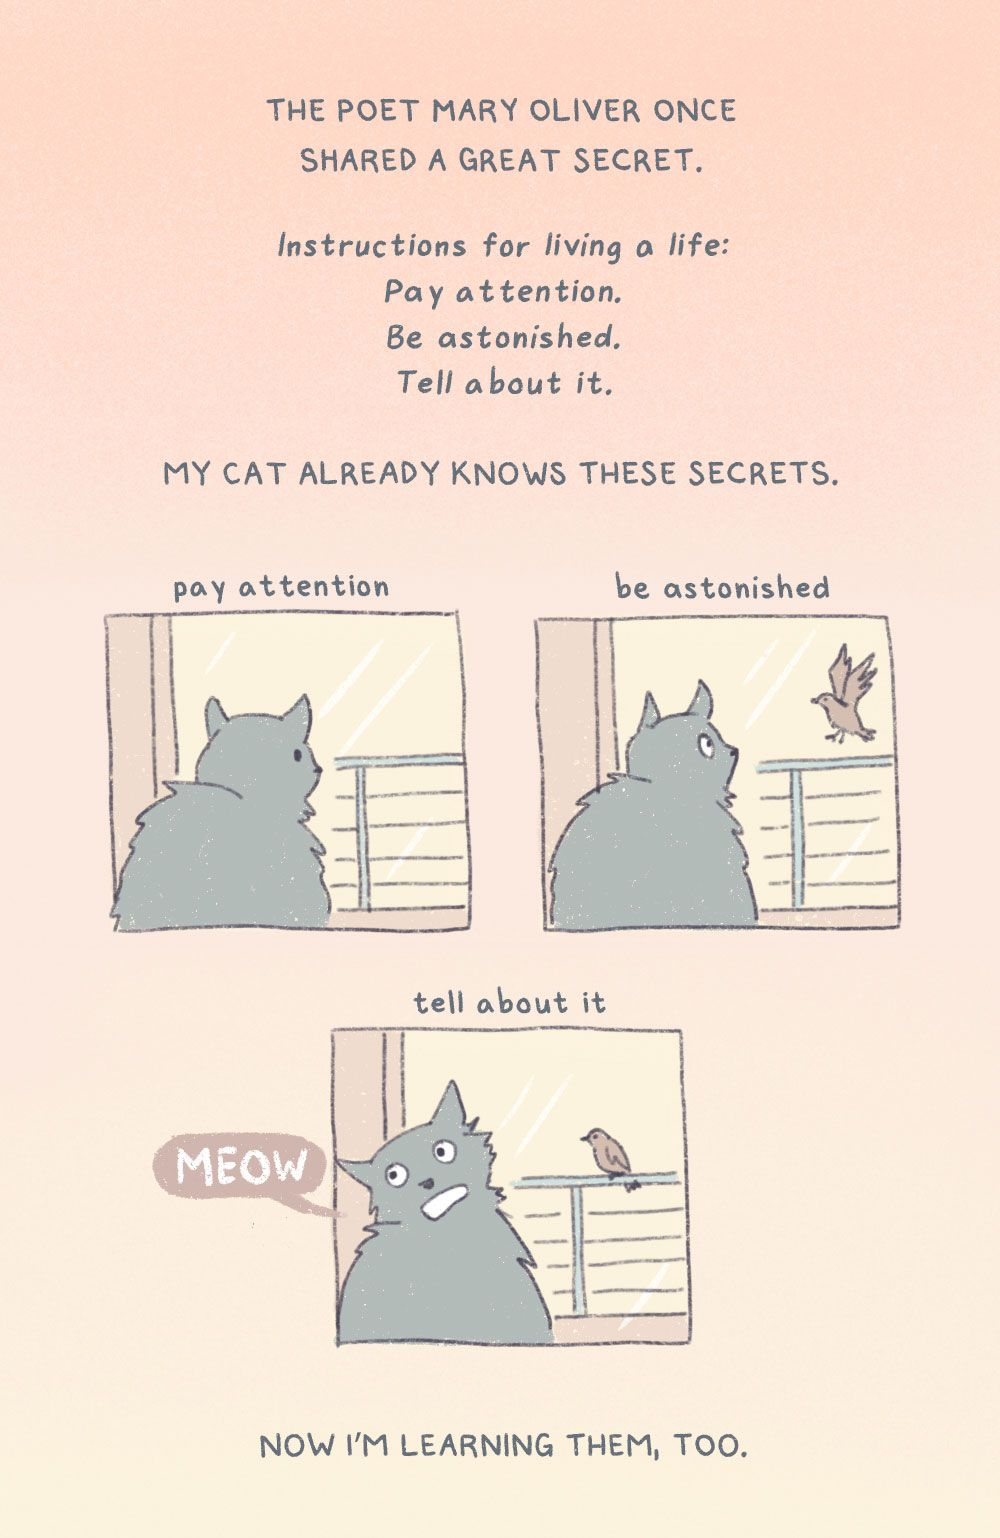 """The poet Mary Oliver once shared a great secret. """"Instructions for living a life:/ Pay attention./ Be astonished.' Tell about it."""" My cat already knows these secrets. Now I'm learning them, too."""